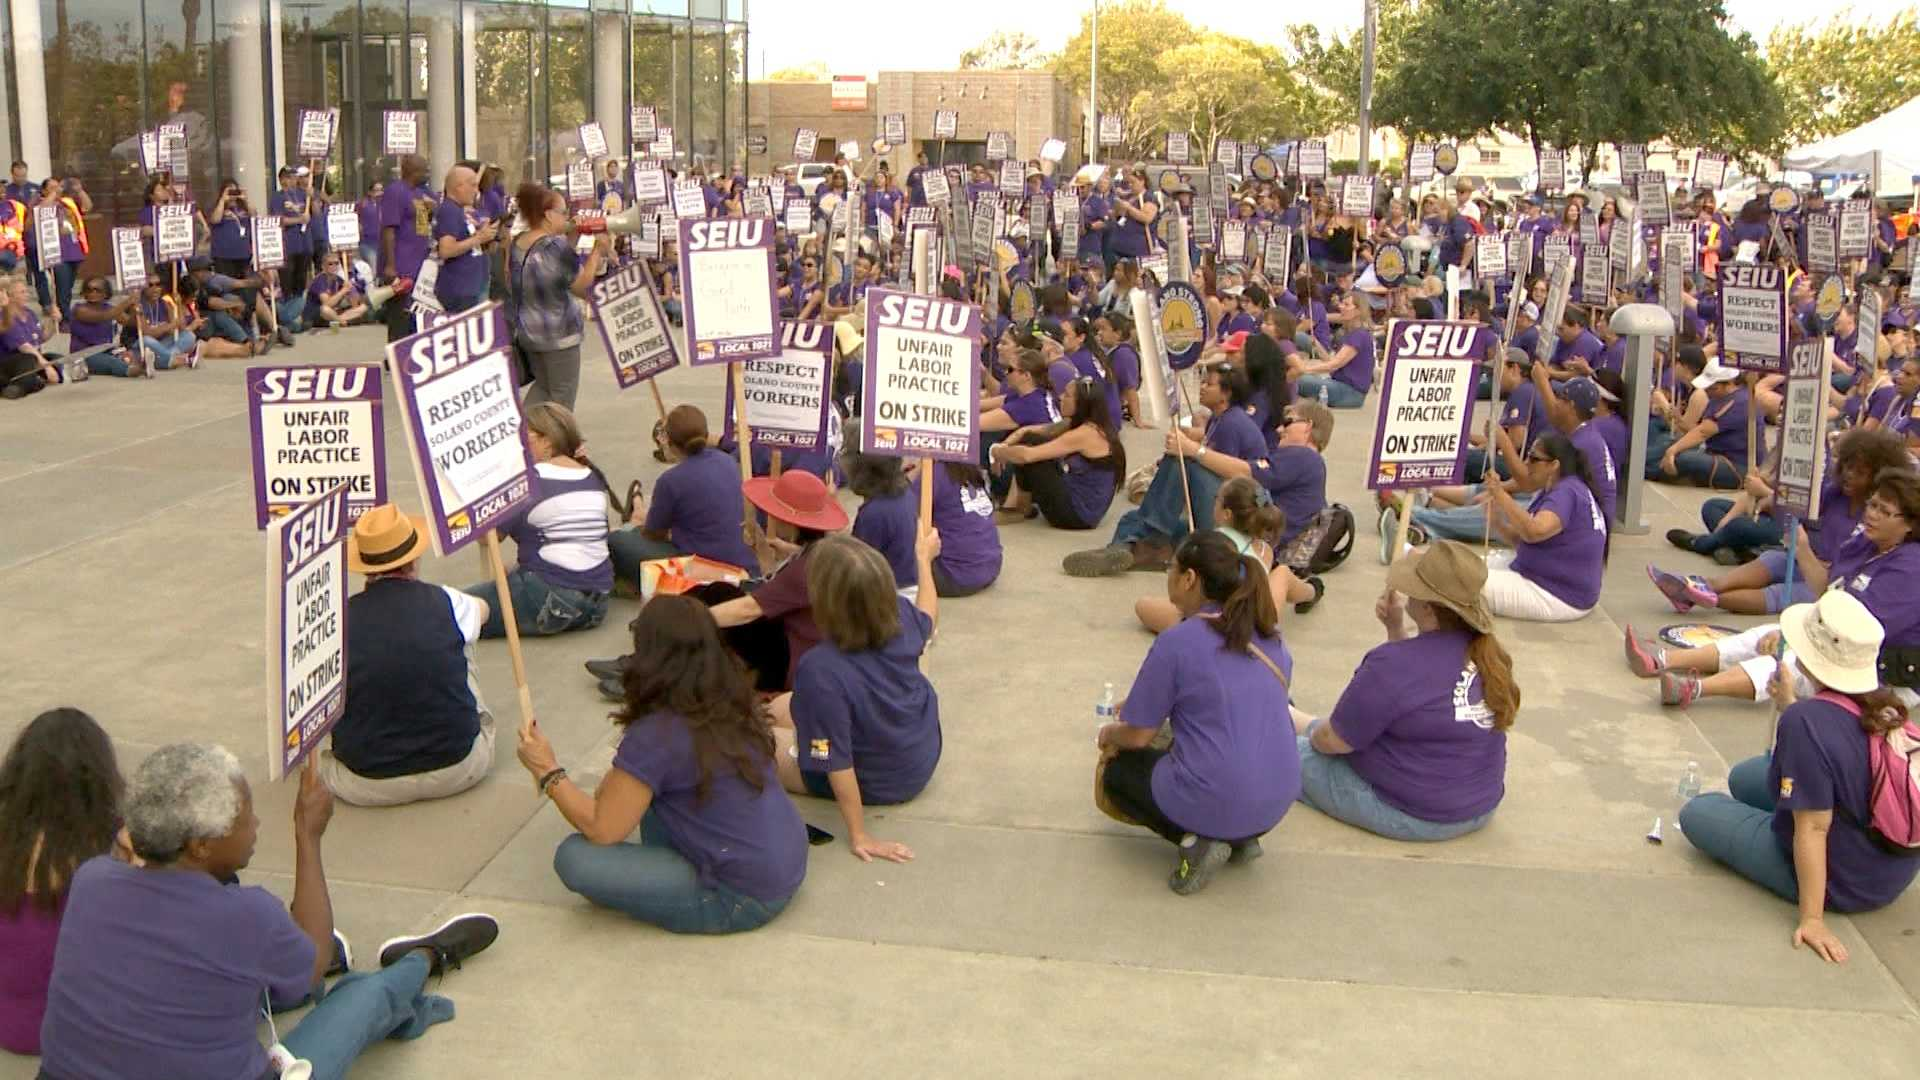 About a 1,000 picketers were outside the Solano County administration building on Thursday, Oct. 15, 2015, demanding  a new contract.